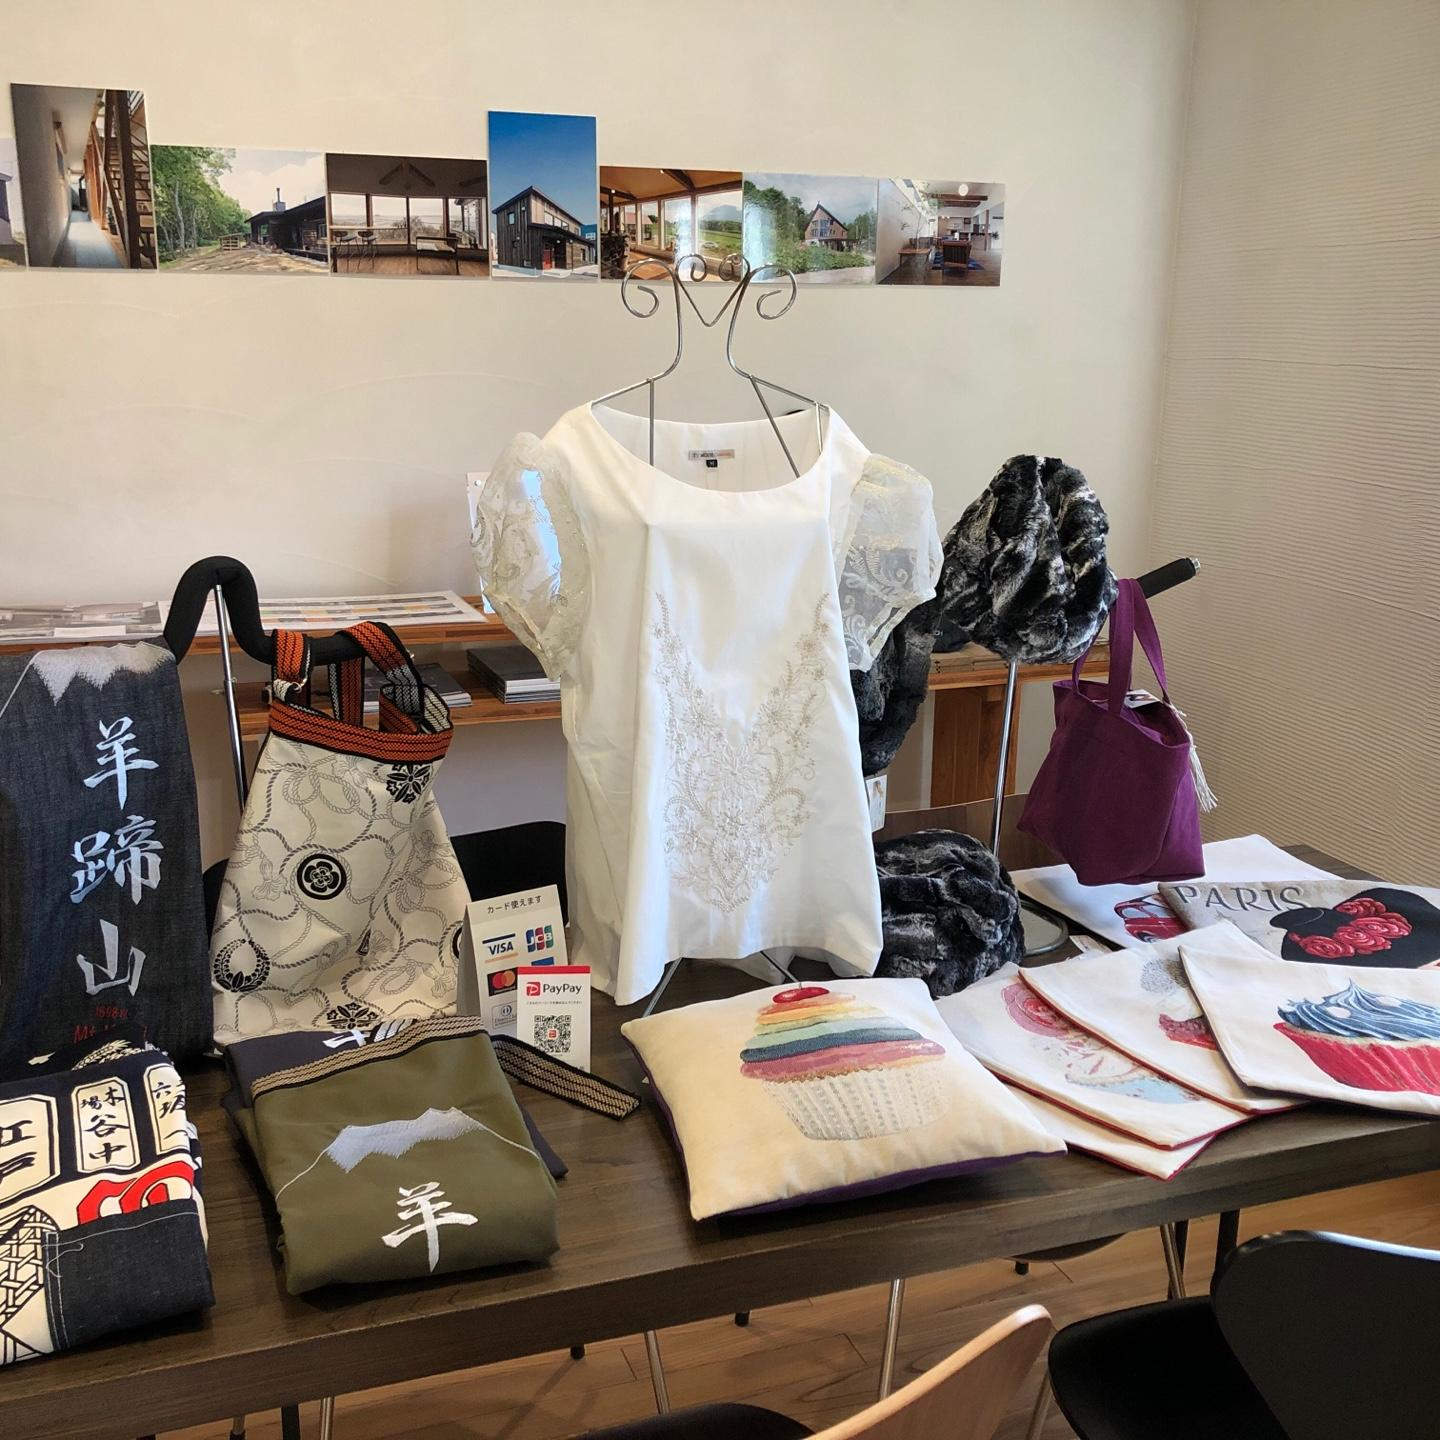 View of some Exhibition items at Chatrium Niseko Japan